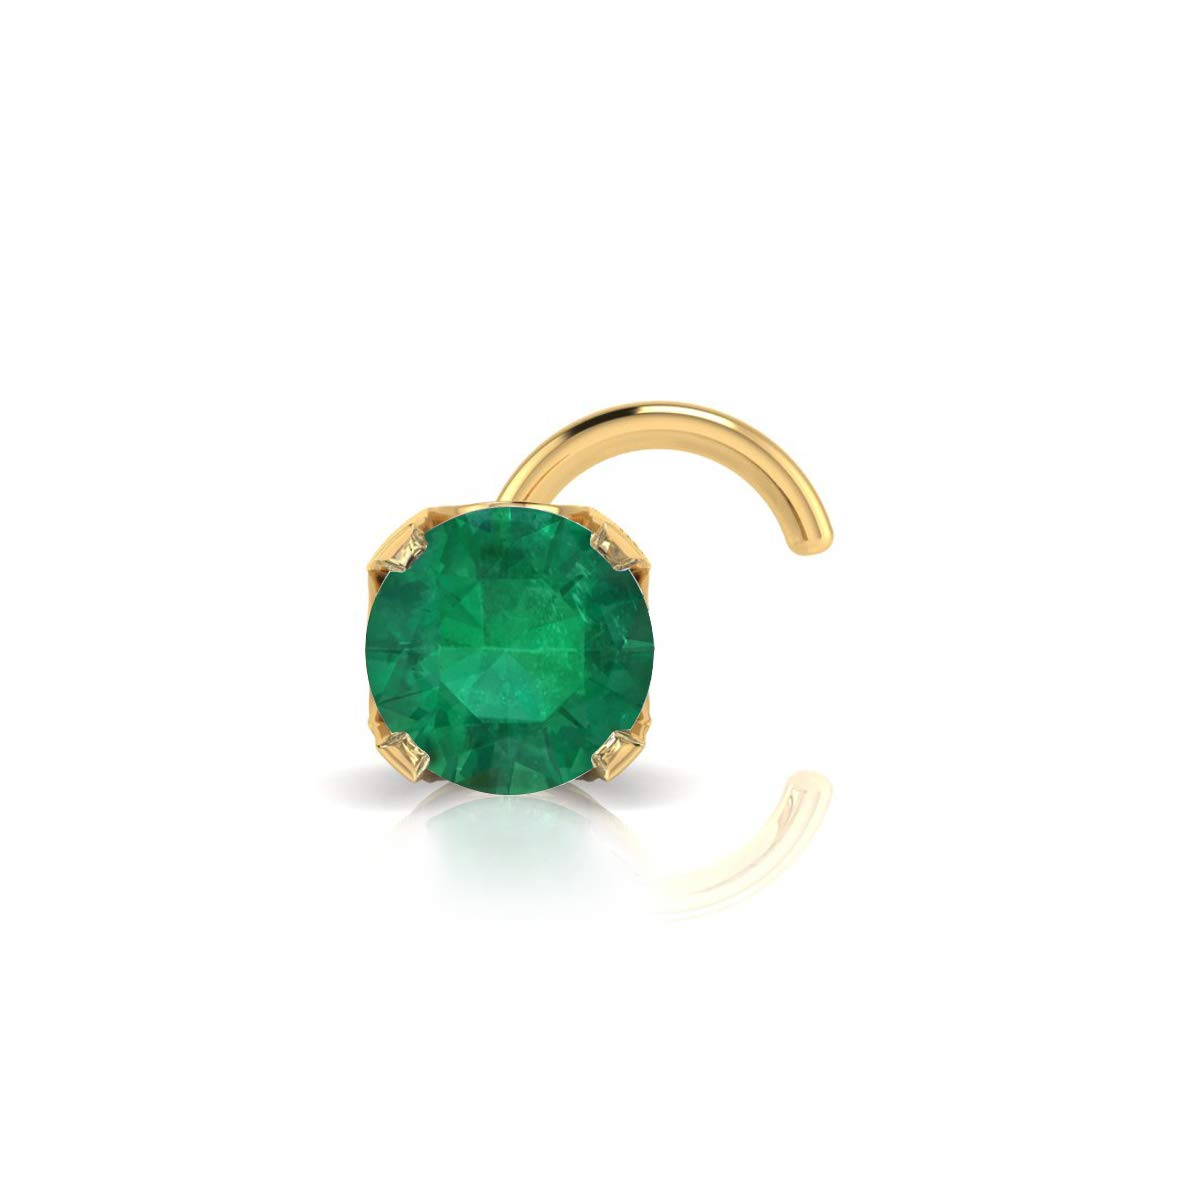 2mm 0.03 Carat Emerald Stud Nose Ring In 14K Yellow Gold by Sparkle Bargains